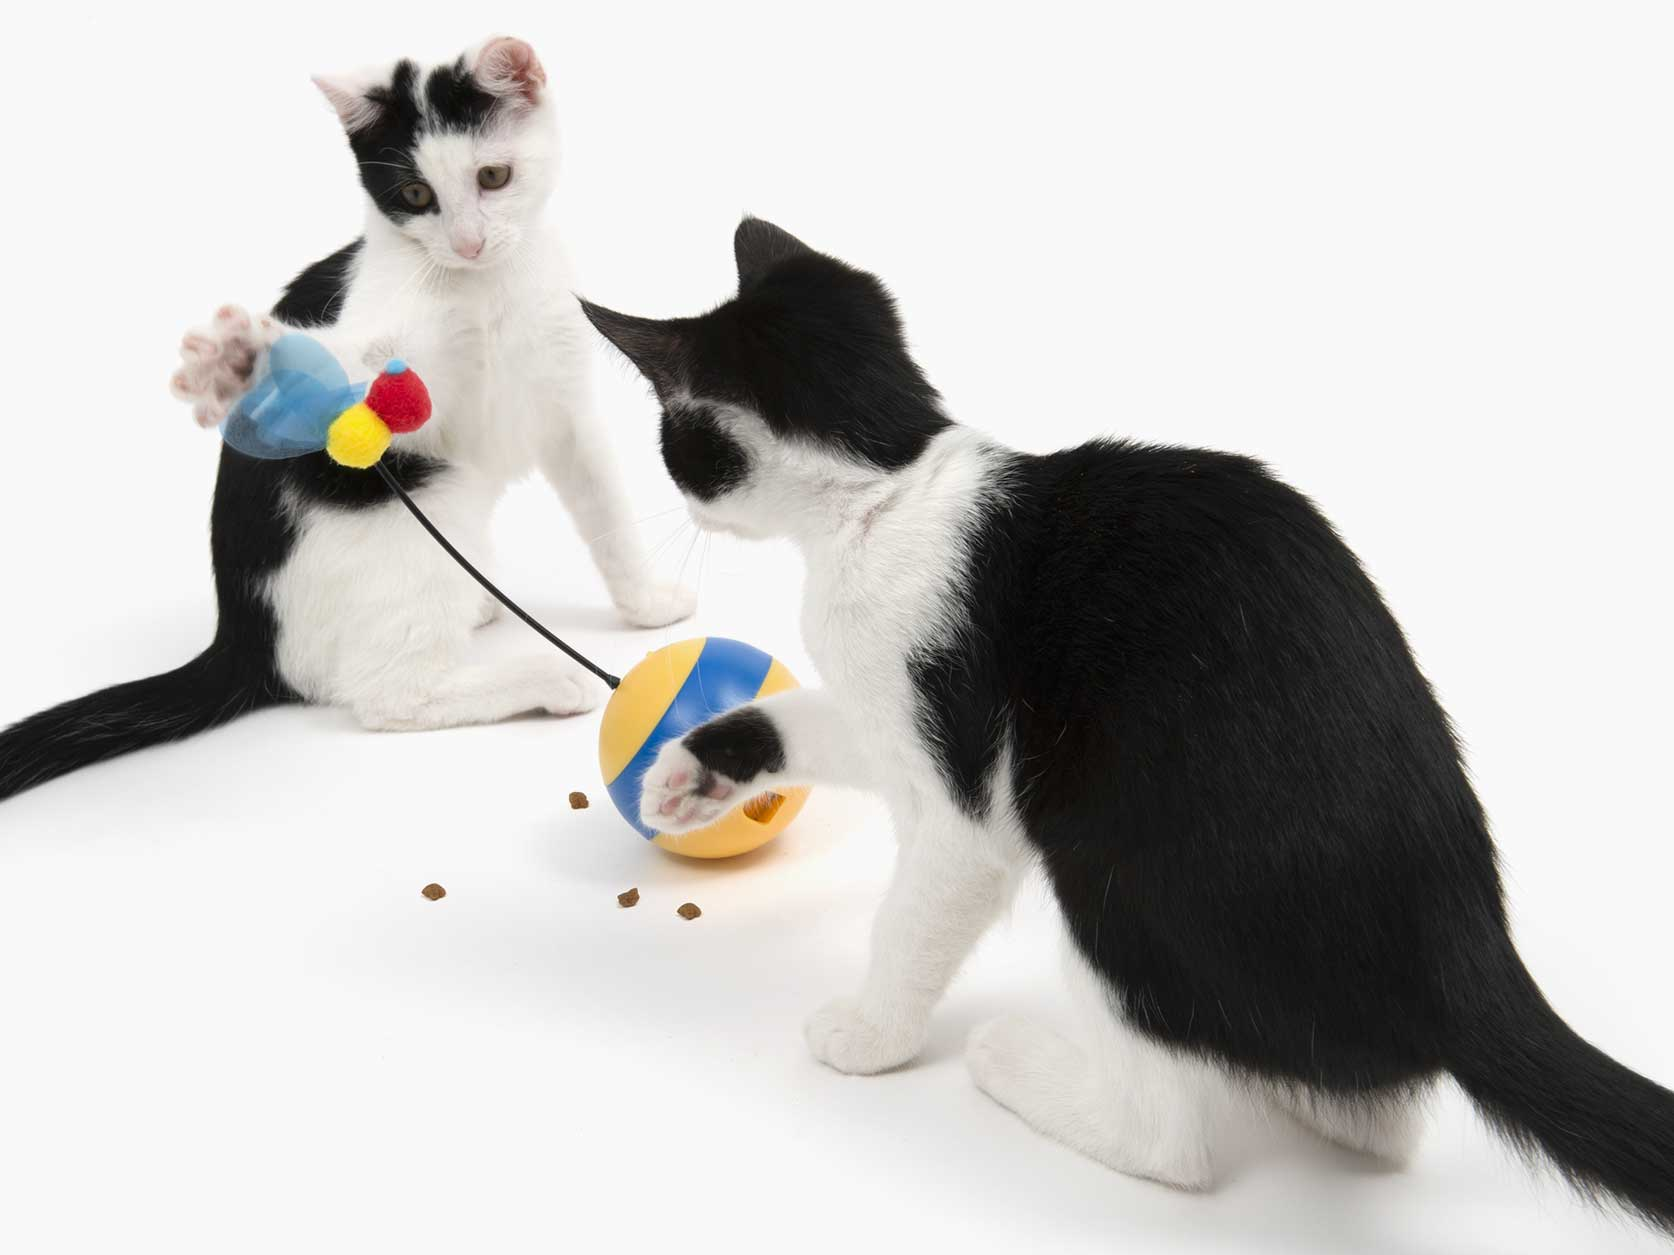 Cats playing grabbing treats from the spinning bee